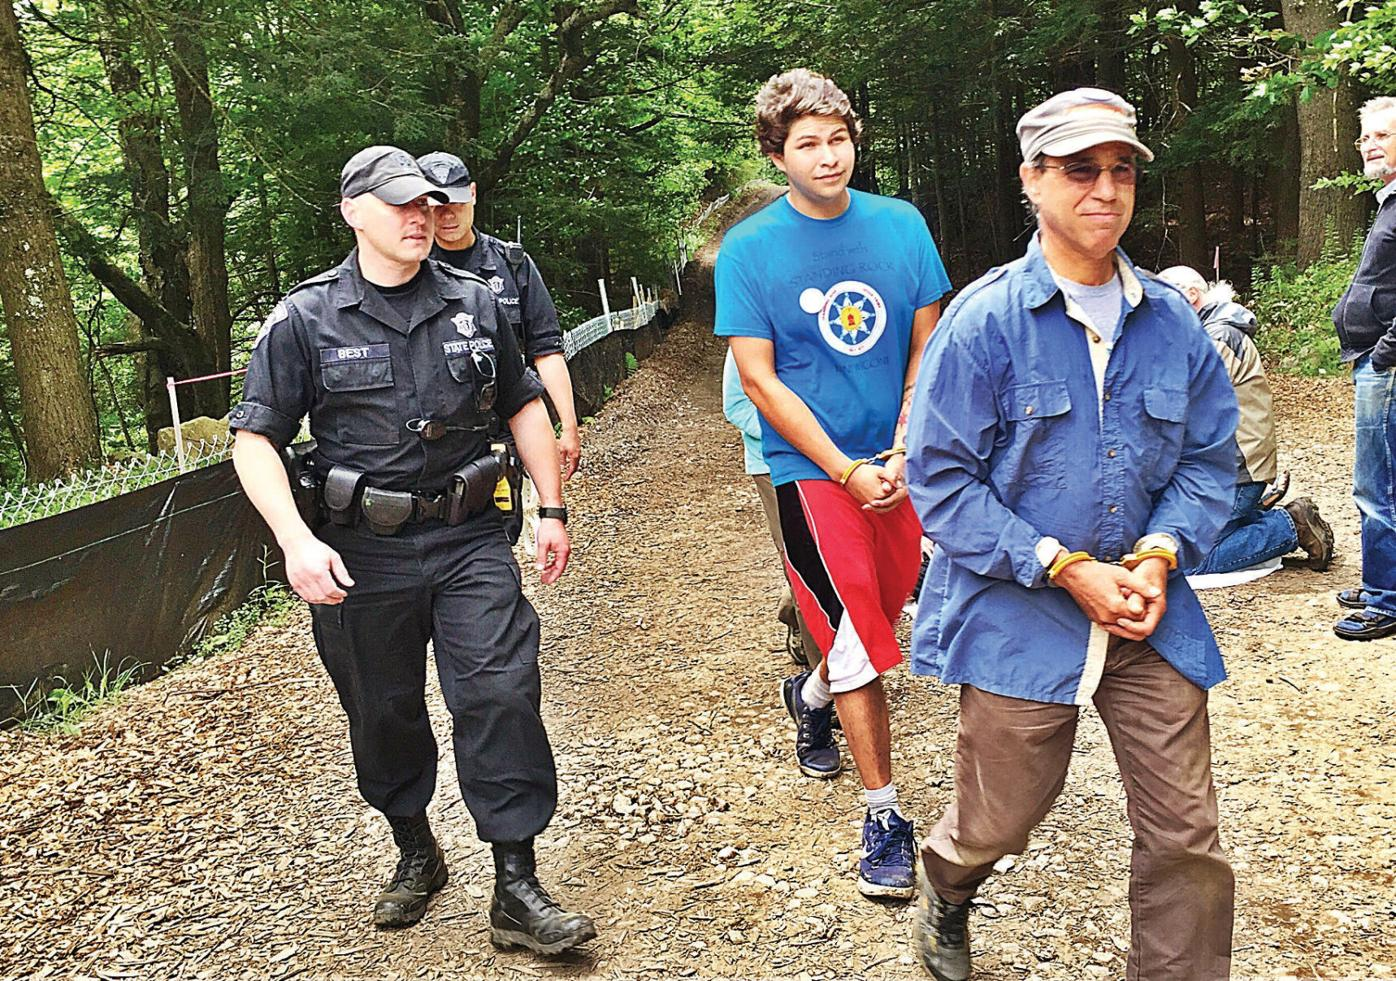 More arrests in anti-pipeline action: Standing Rock Sioux now part of resistance